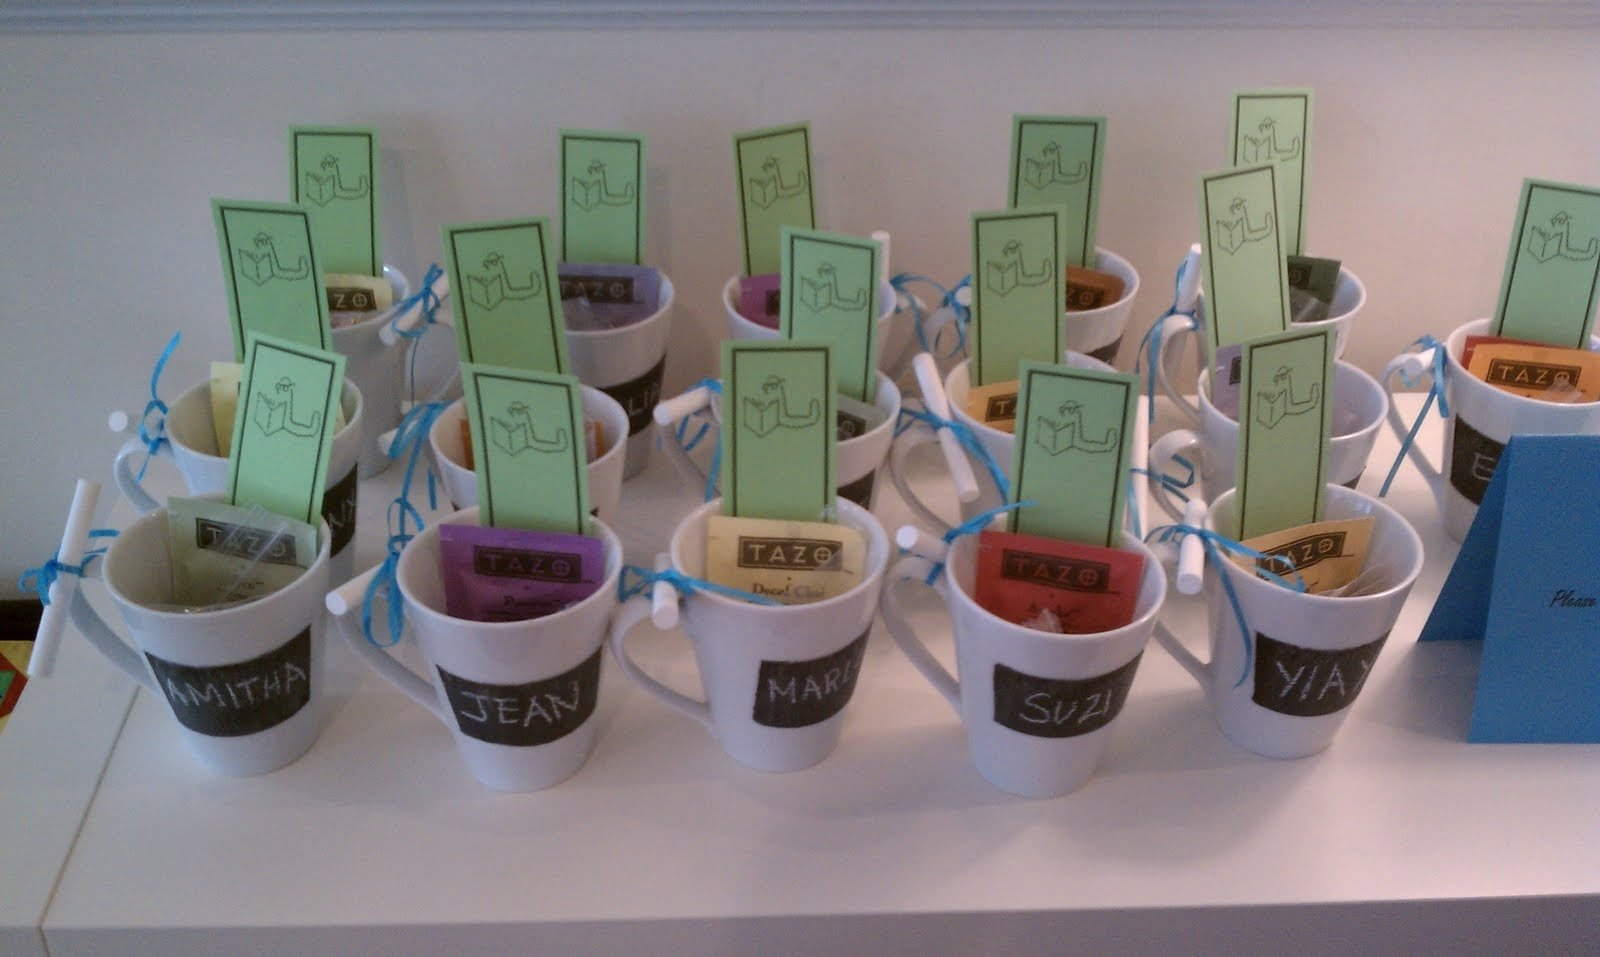 10 Attractive Baby Shower Favor Ideas To Make Yourself saving discount cheap baby shower favors inexpensive on budget 2021